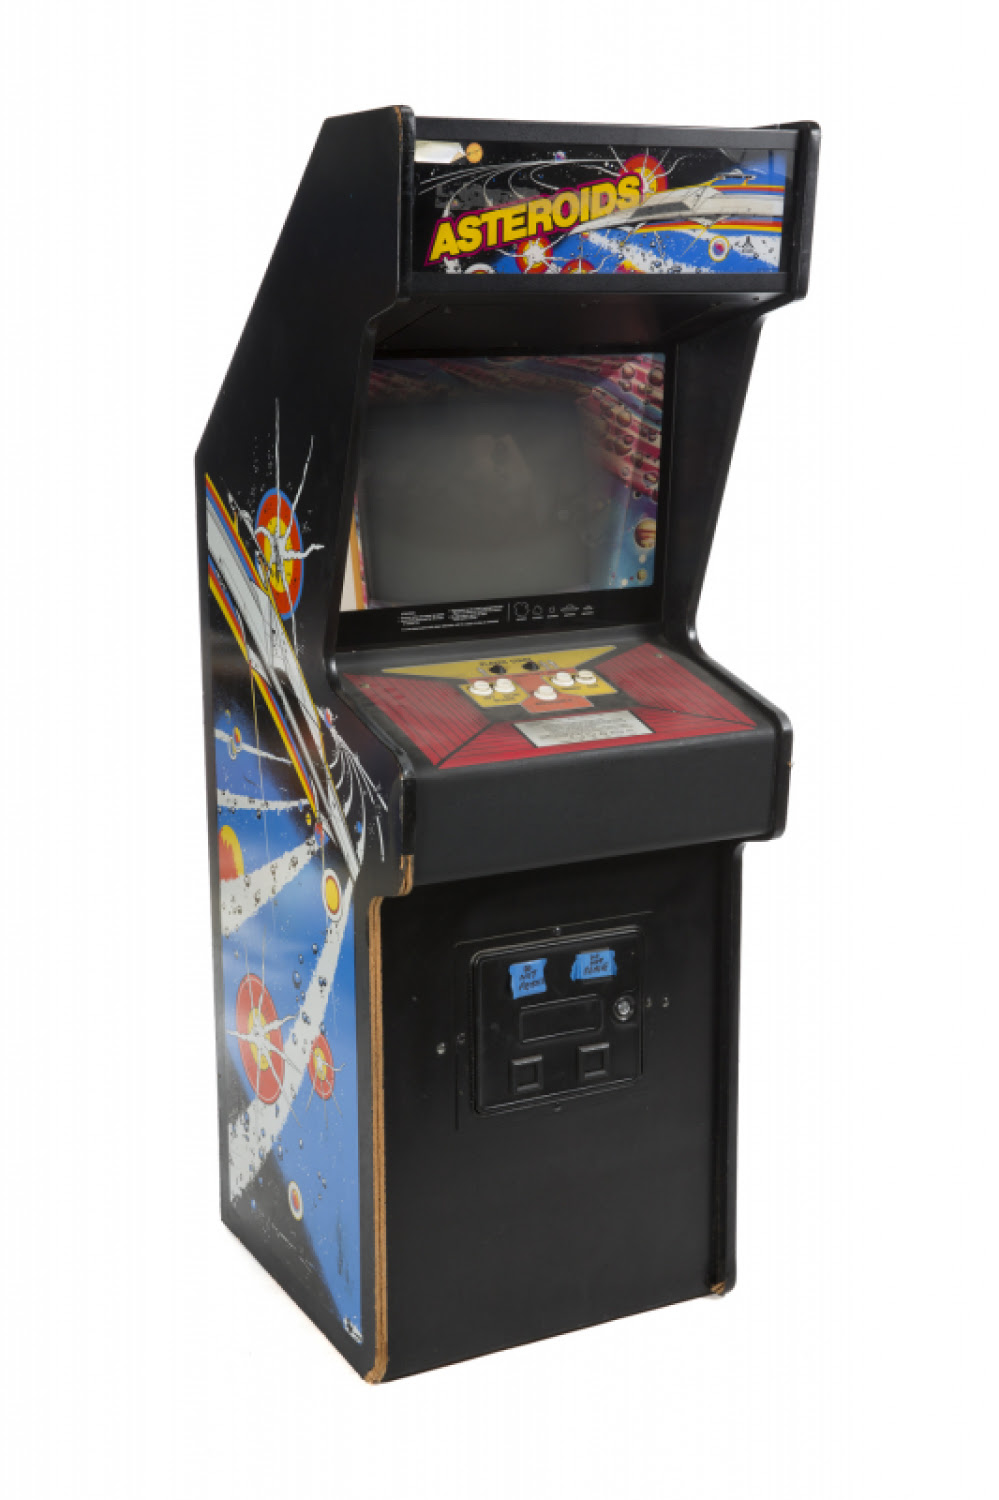 RONNIE JAMES DIO ASTEROIDS ARCADE CABINET